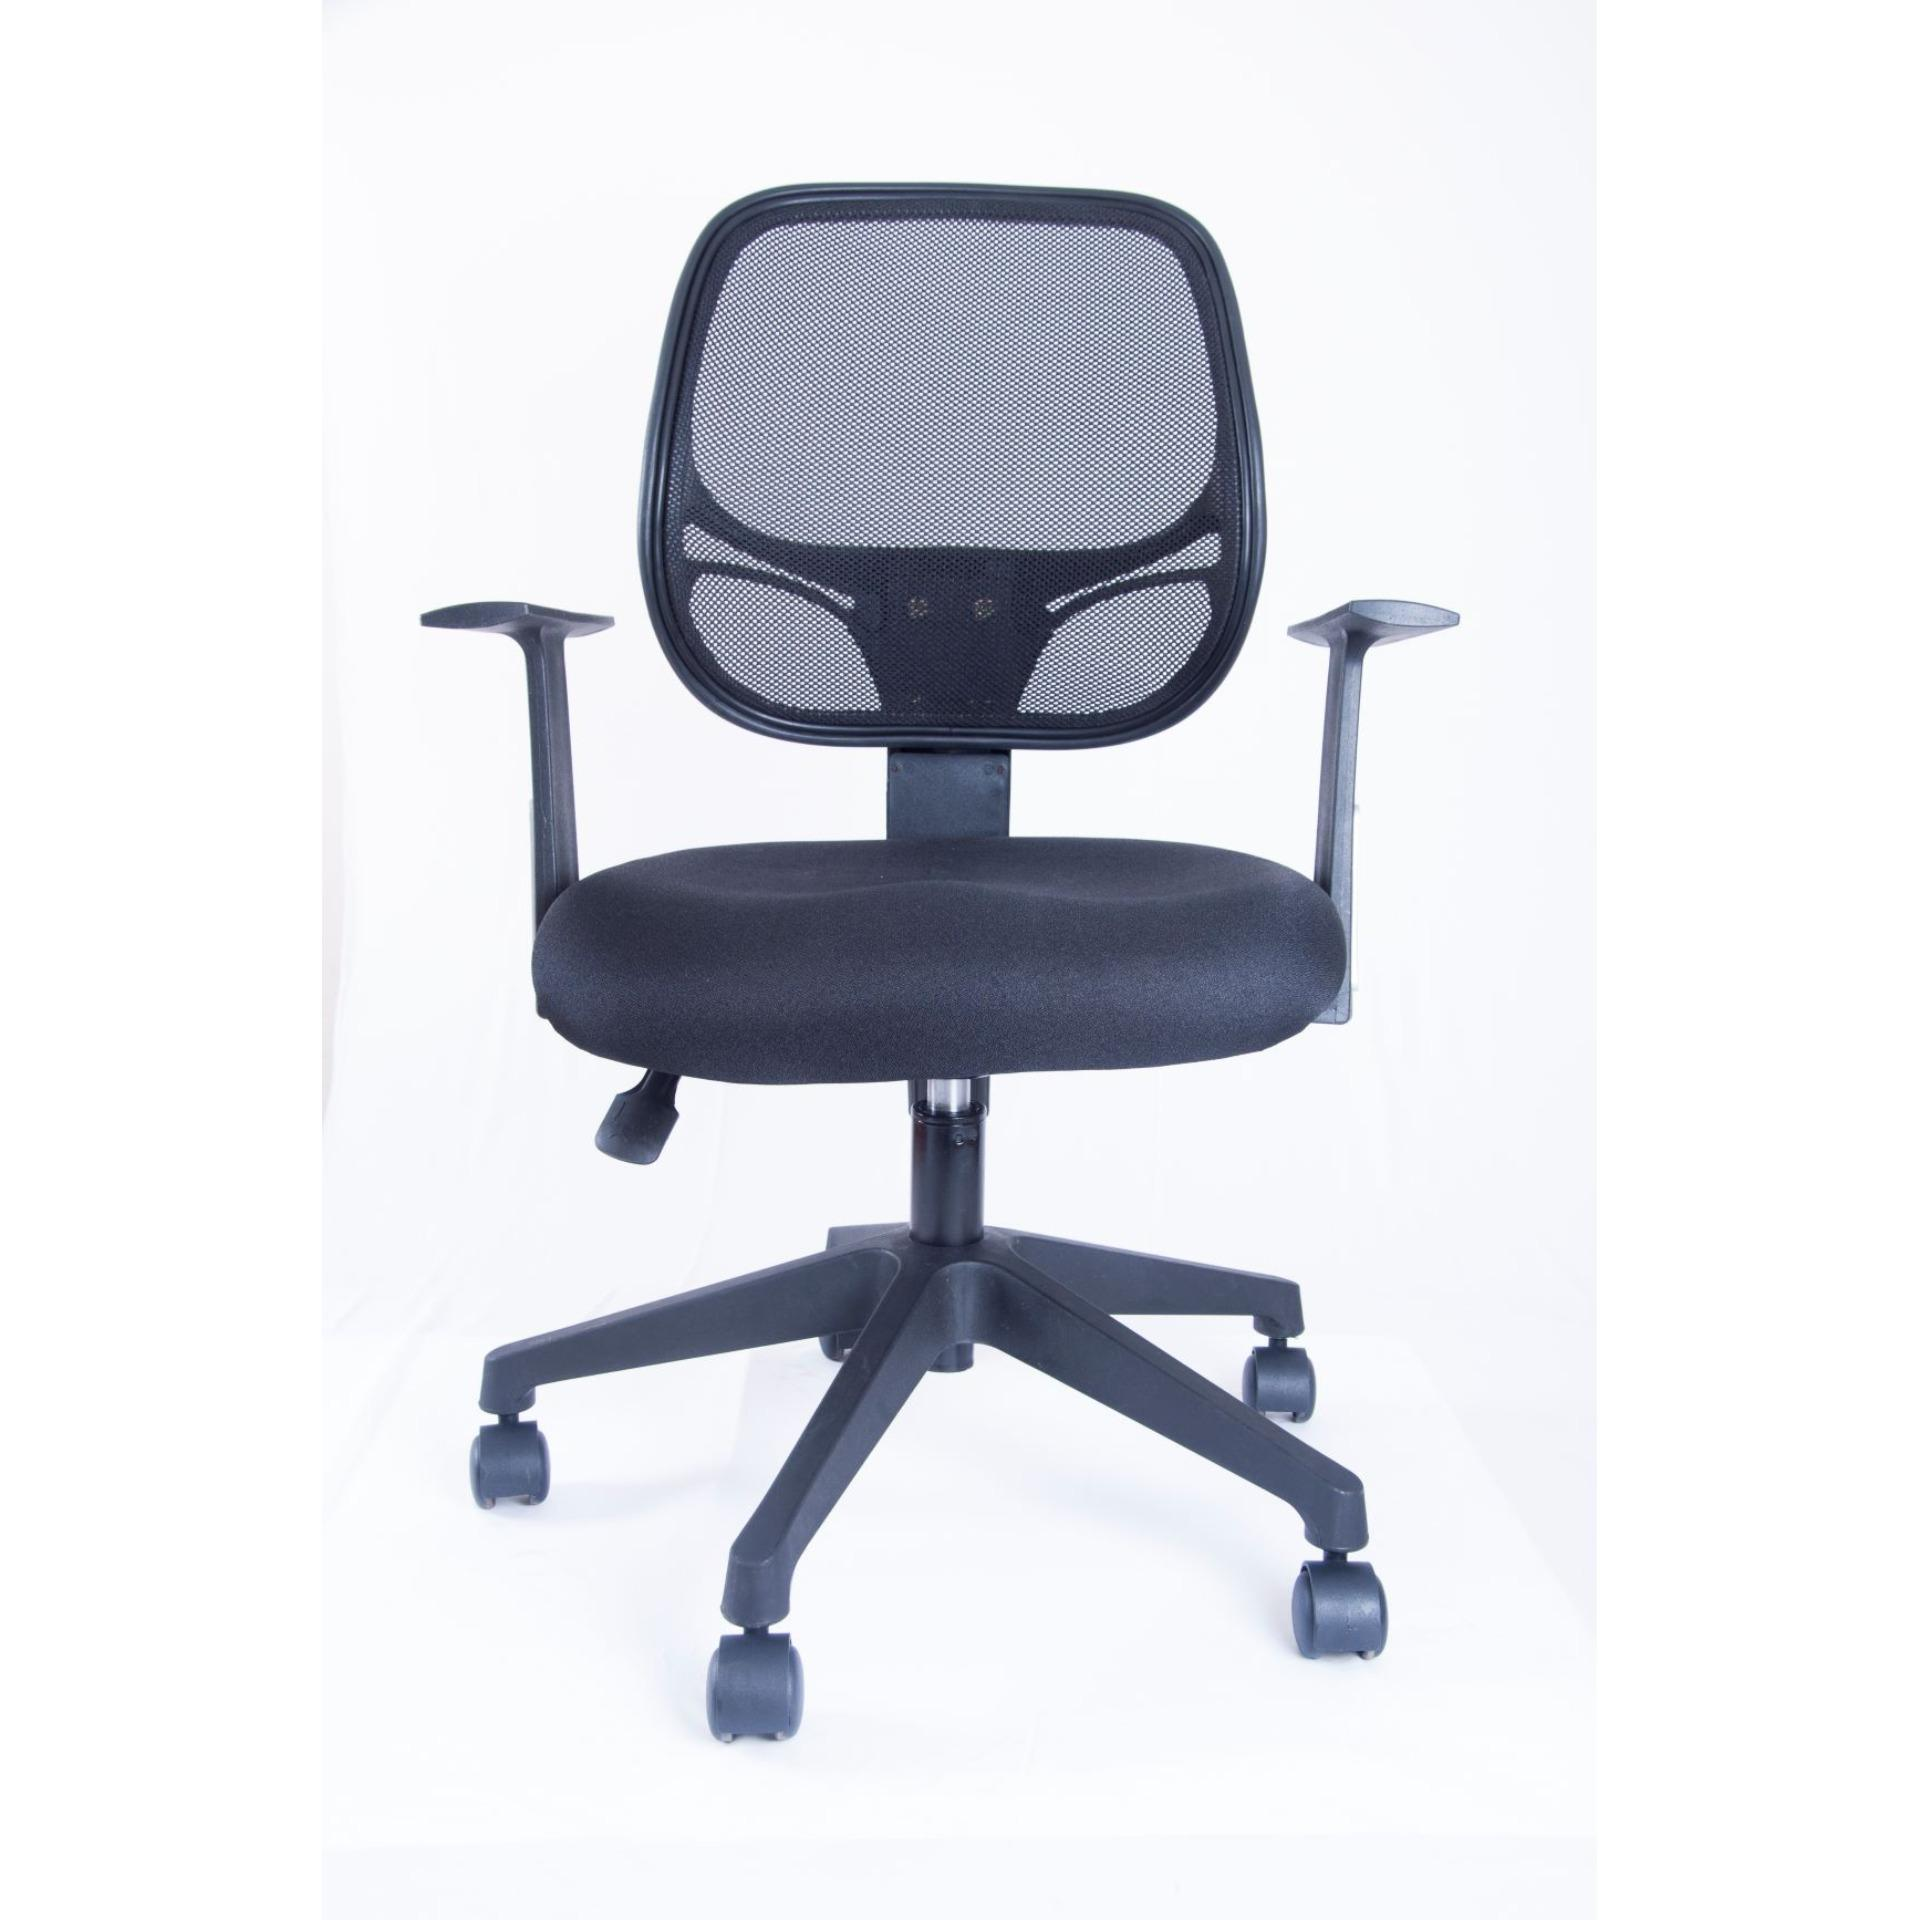 Chair Price Atlas Executive Chair Black